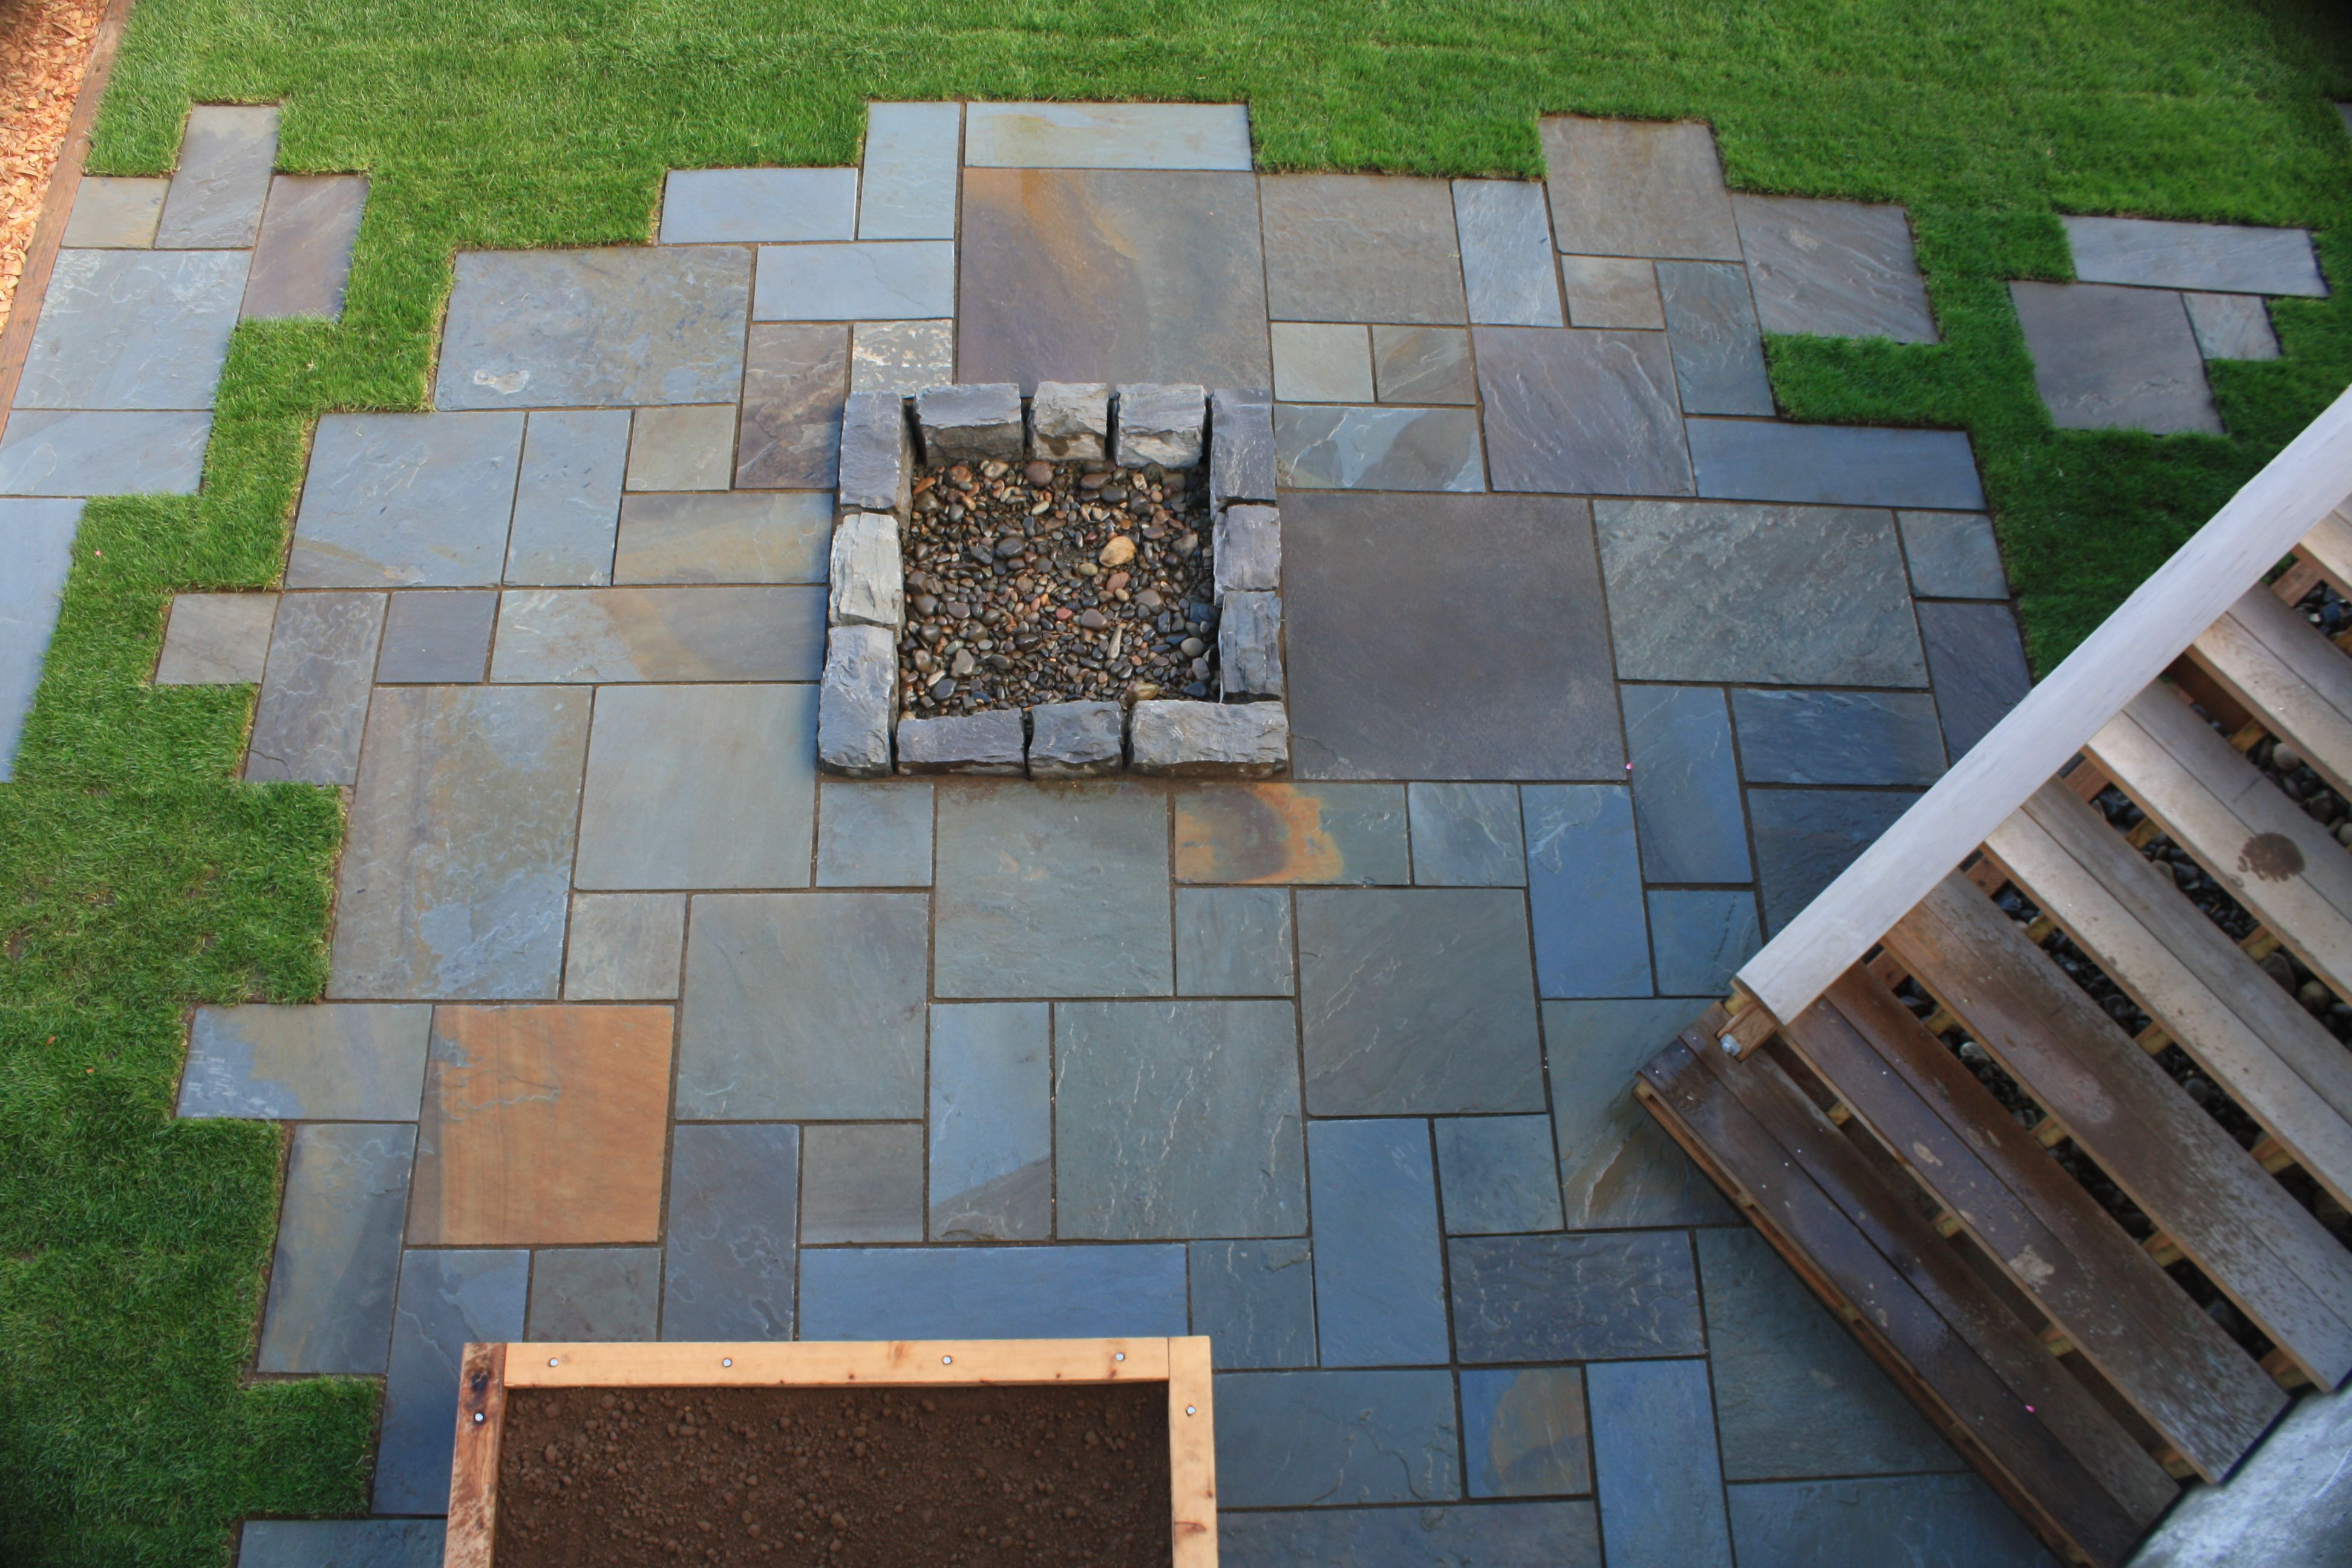 Dimensional Bluestone Patio With Irregular Edge Creates A Puzzle Like Feel To This Patio And Stepping Stones D Bluestone Patio Paving Stone Patio Patio Stones